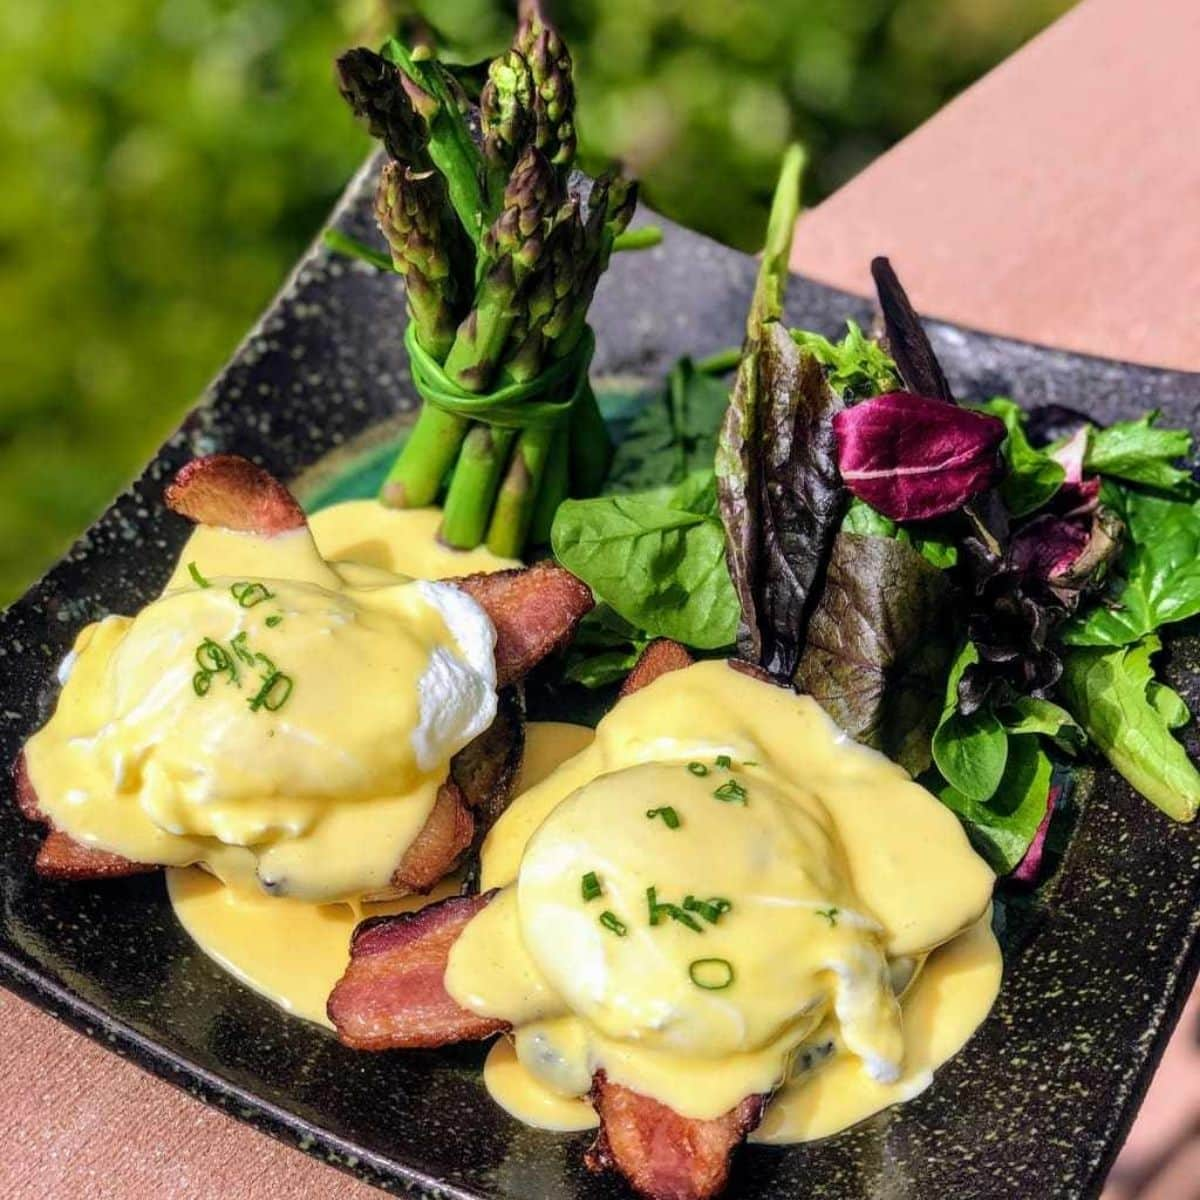 eggs benedict with bacon, asparagus, and mixed greens